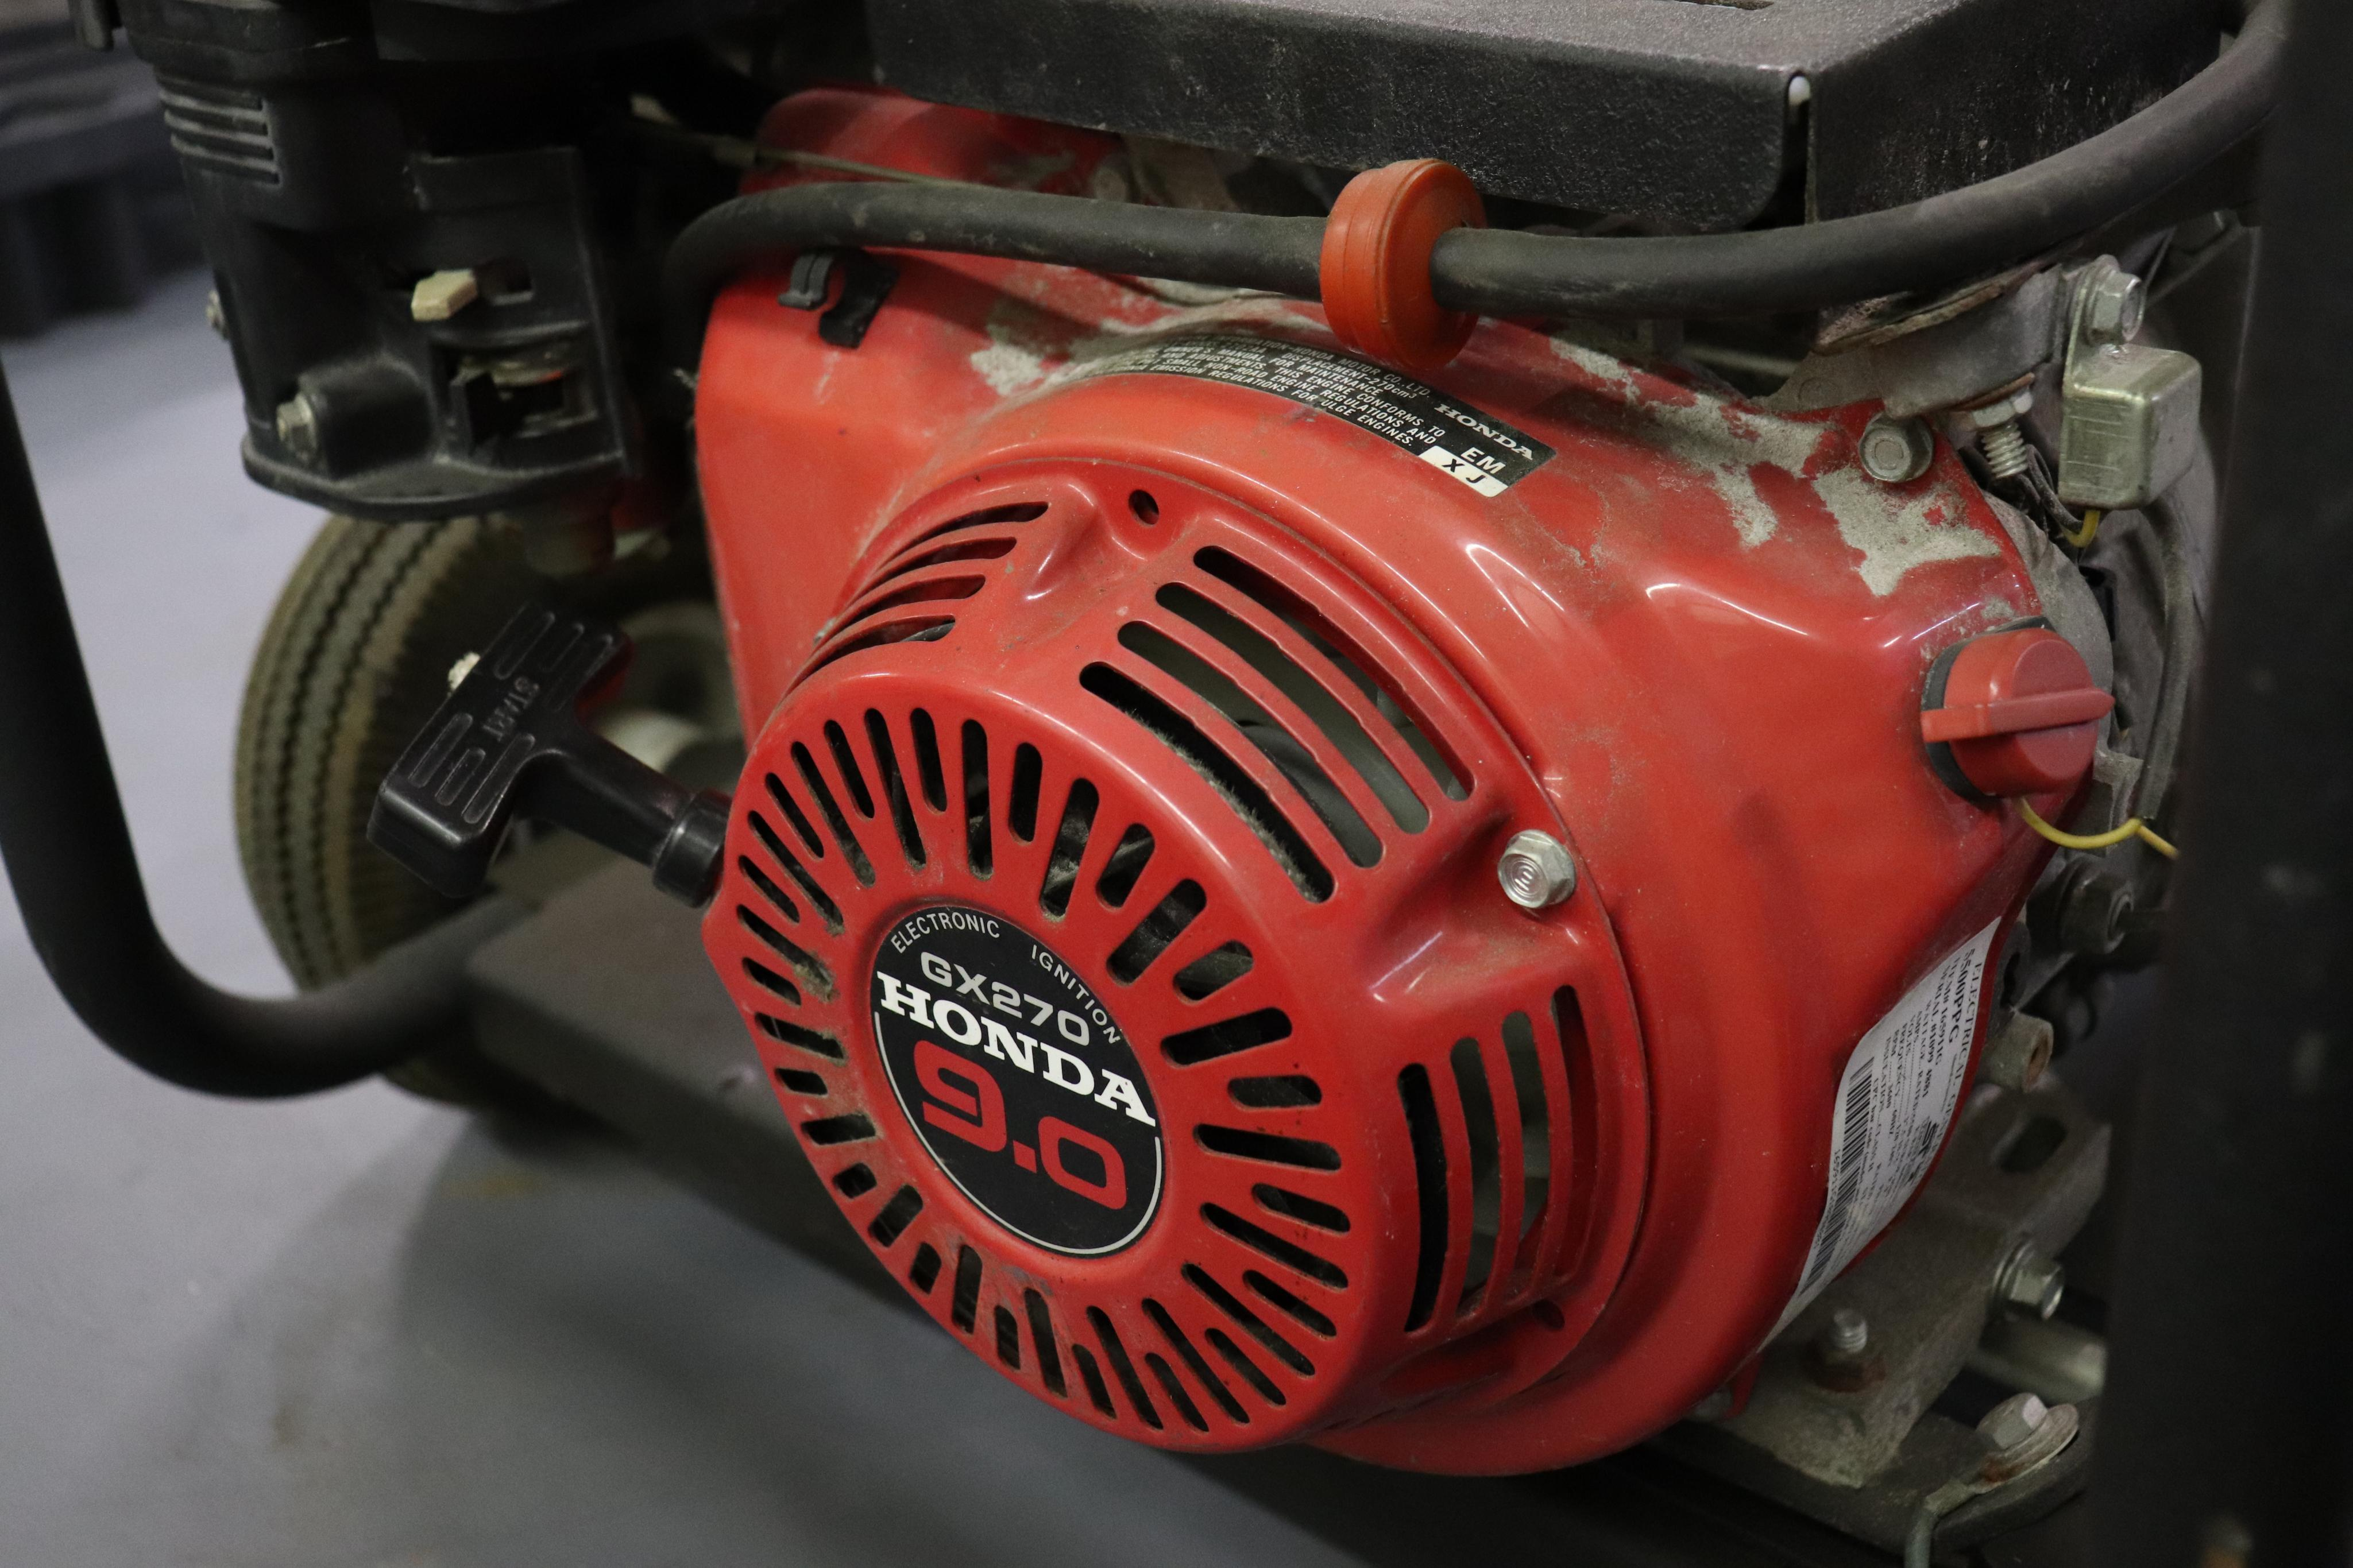 North Star 5500 PPG Pro Series Generator - Image 4 of 4